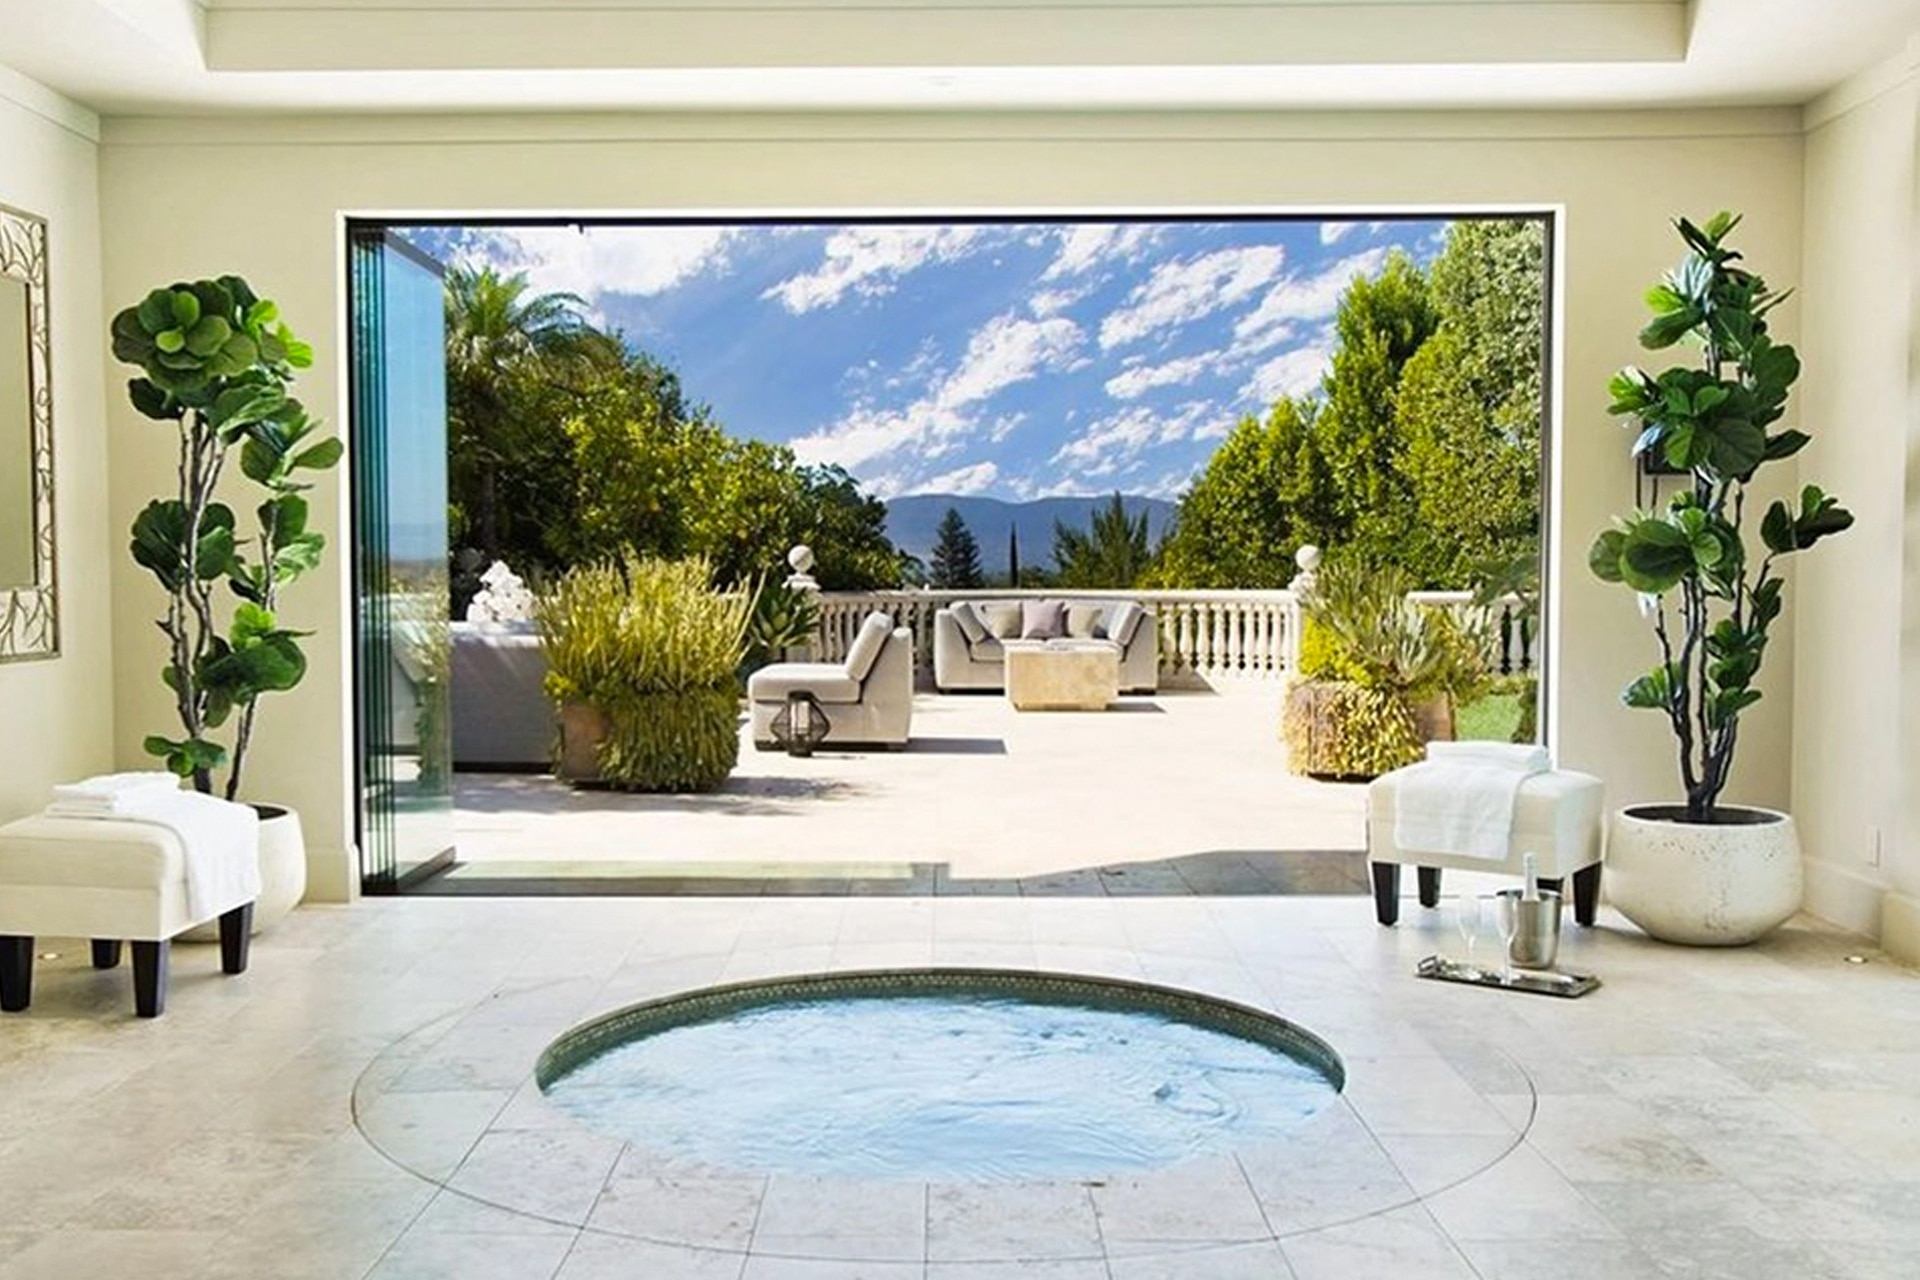 Dr. Dre Just Sold His LA Mansion For $6.6M And You're Going To Want To Take A Look.